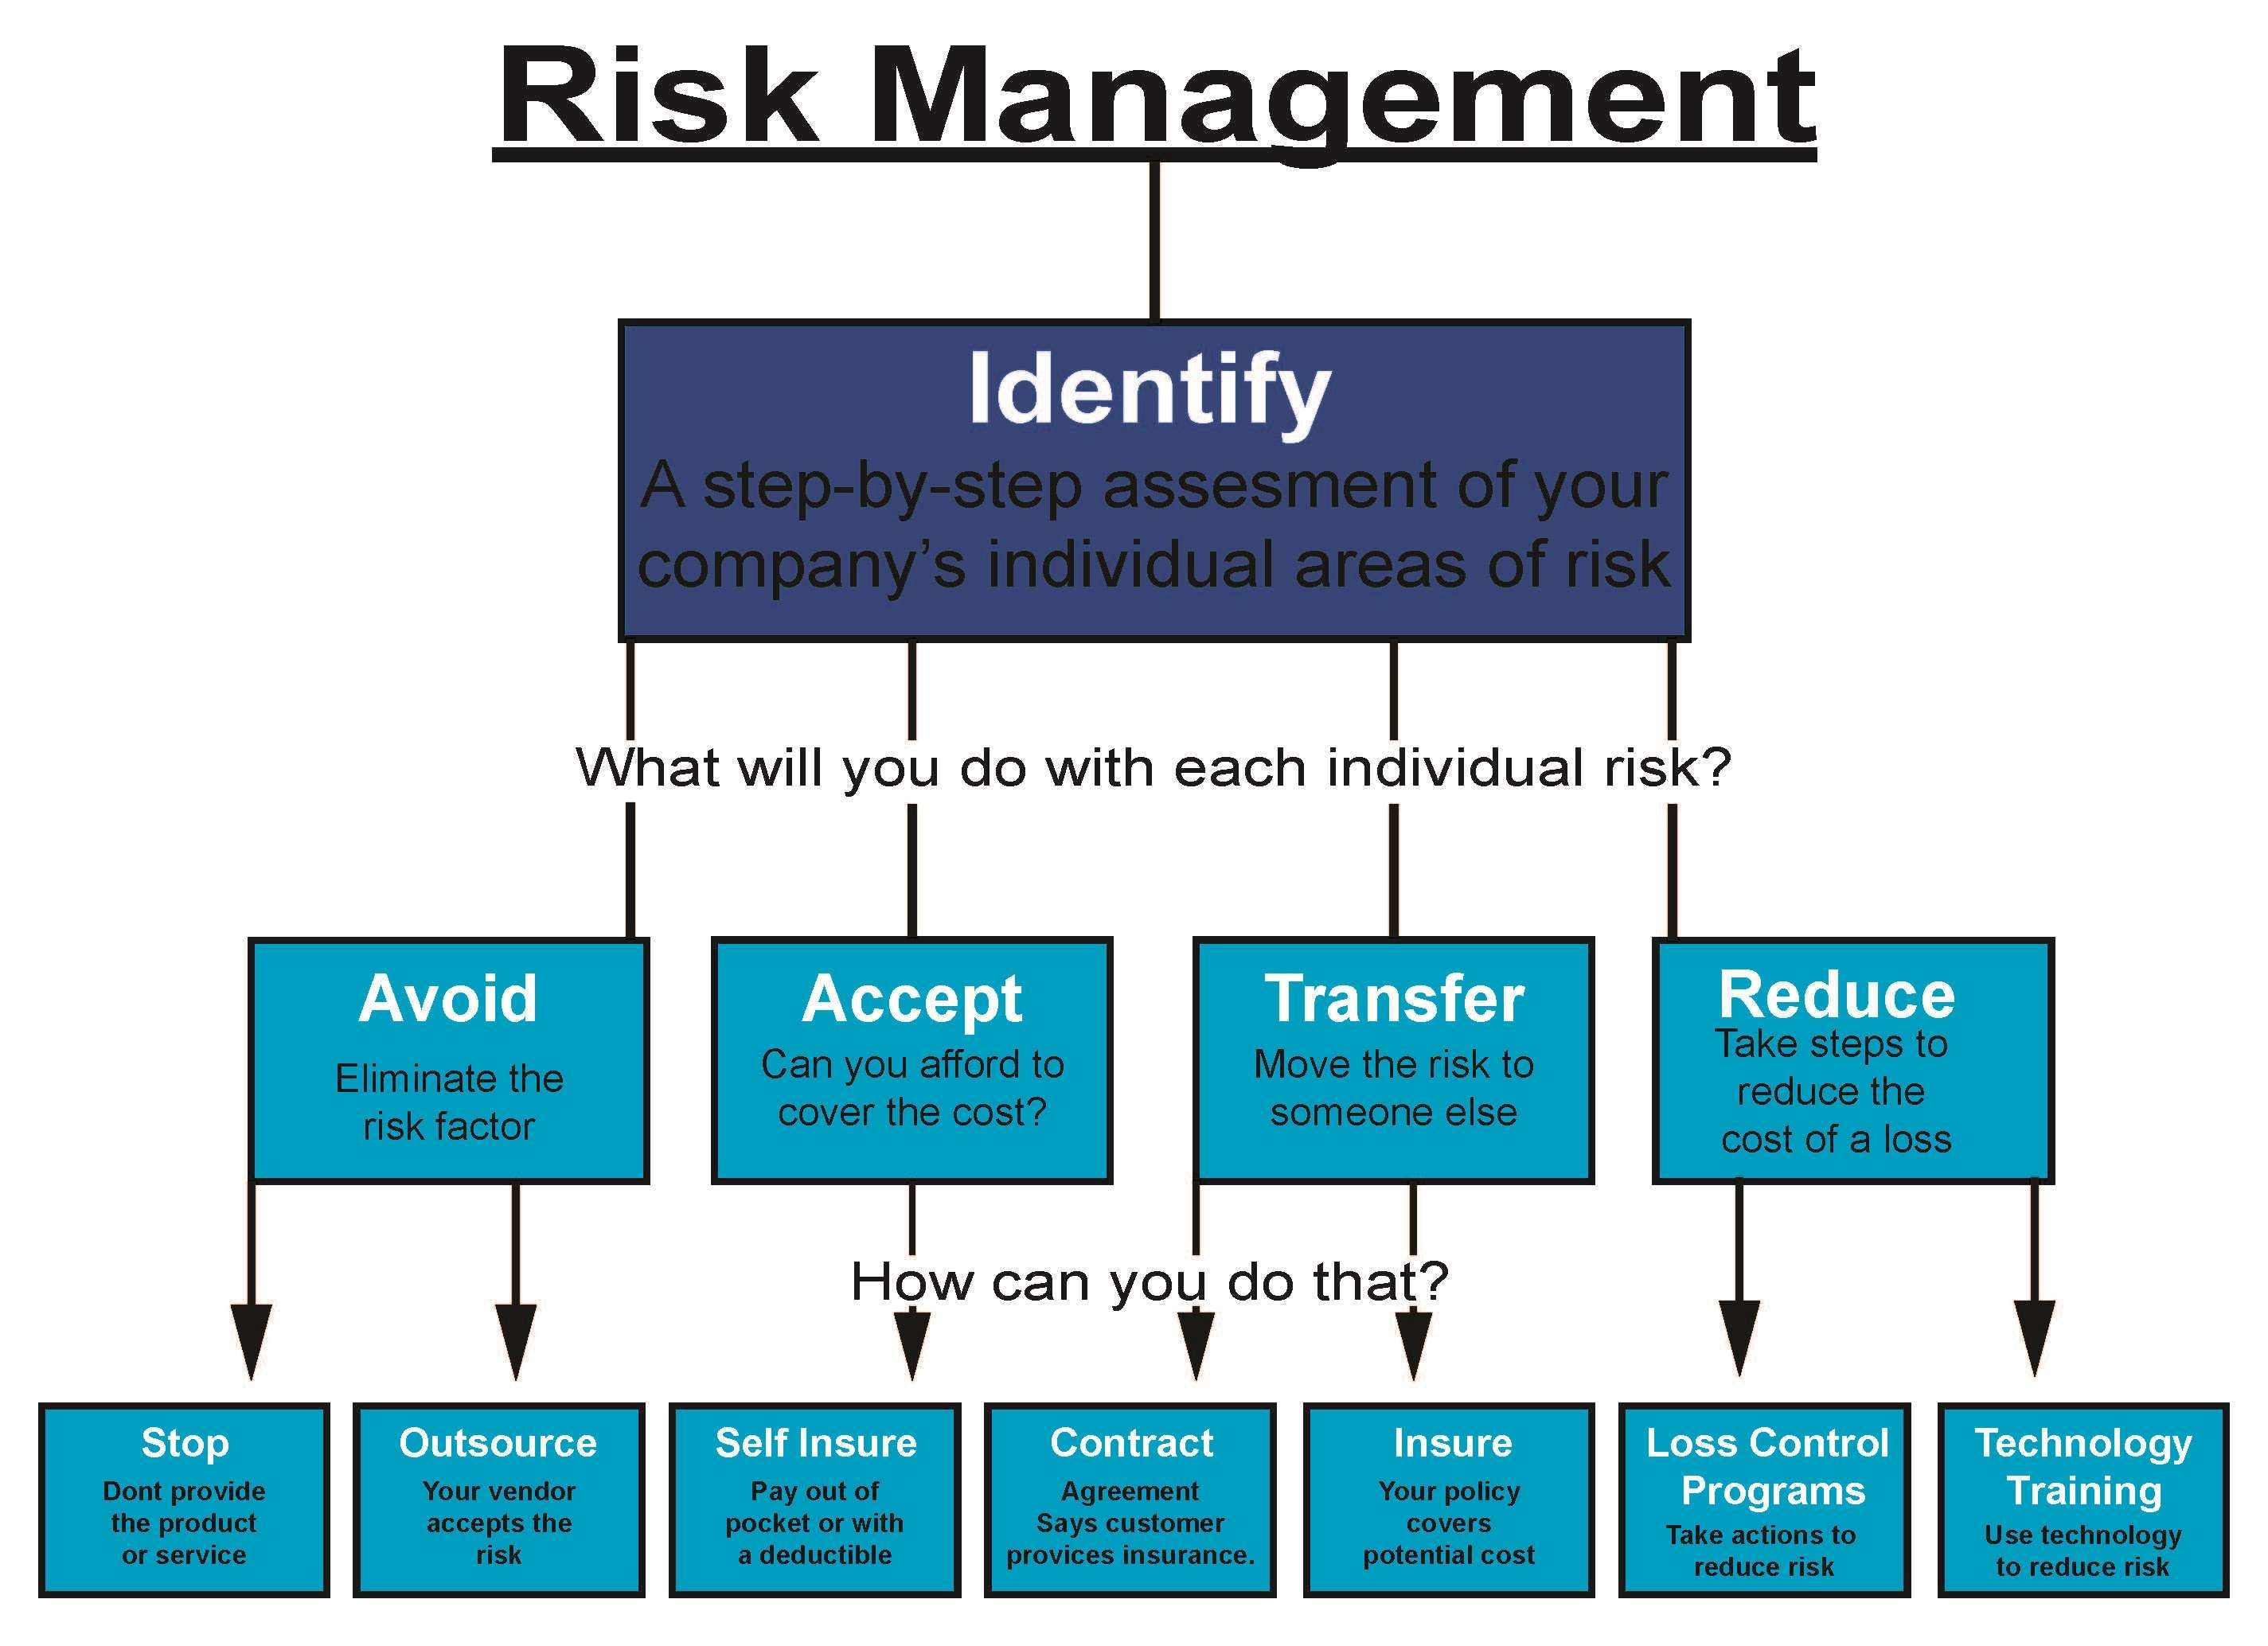 Risk Management Is The Identification Evaluation And